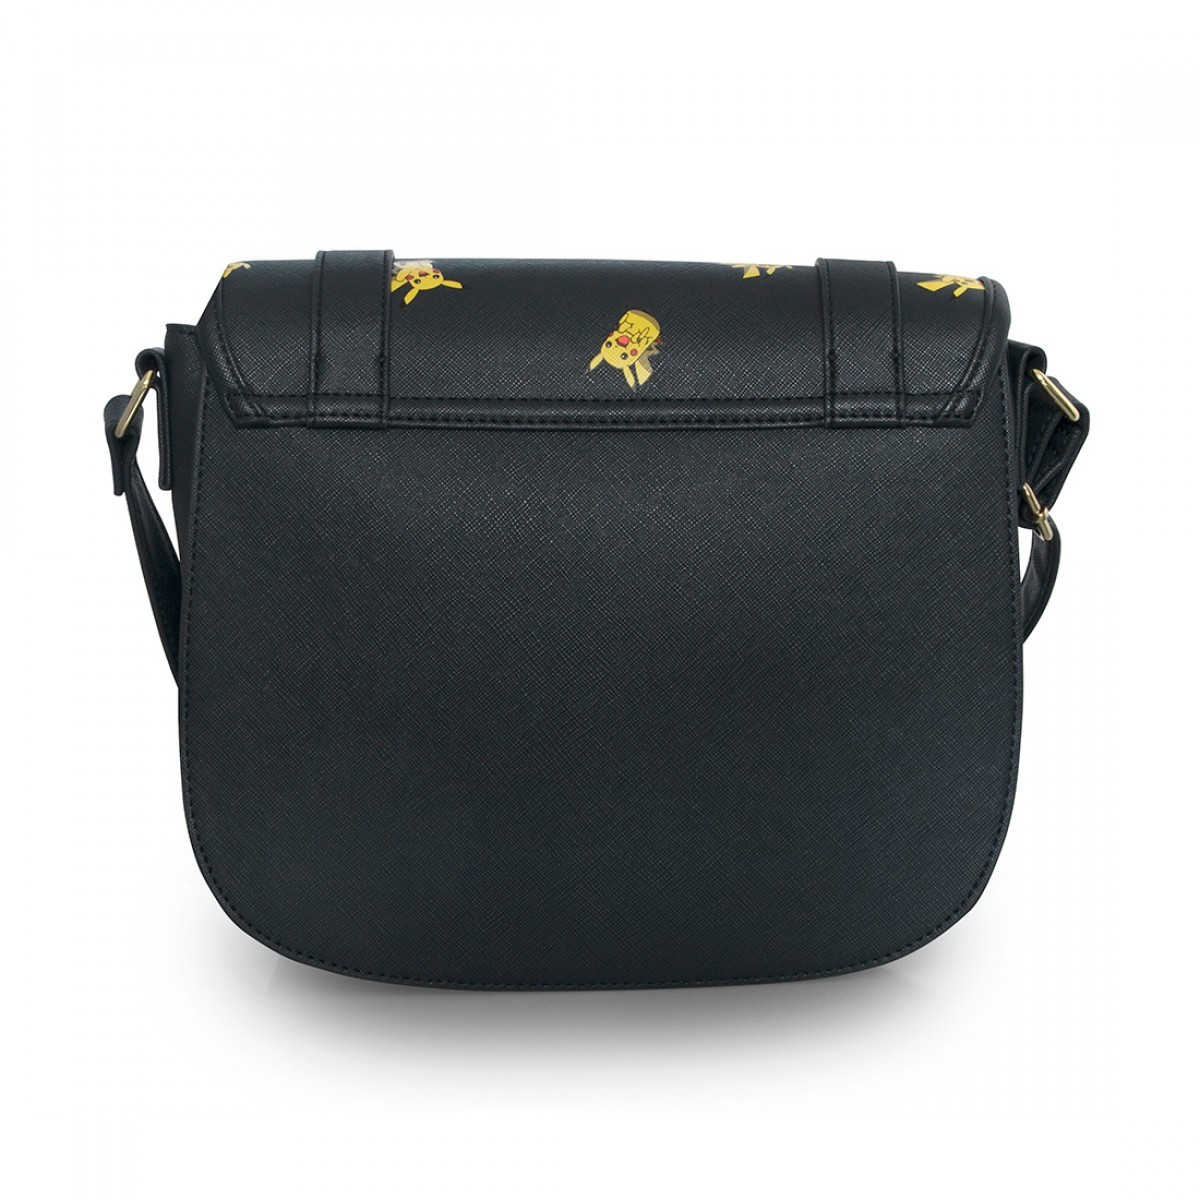 Loungefly Pokemon Pikachu Print Crossbody Bag image